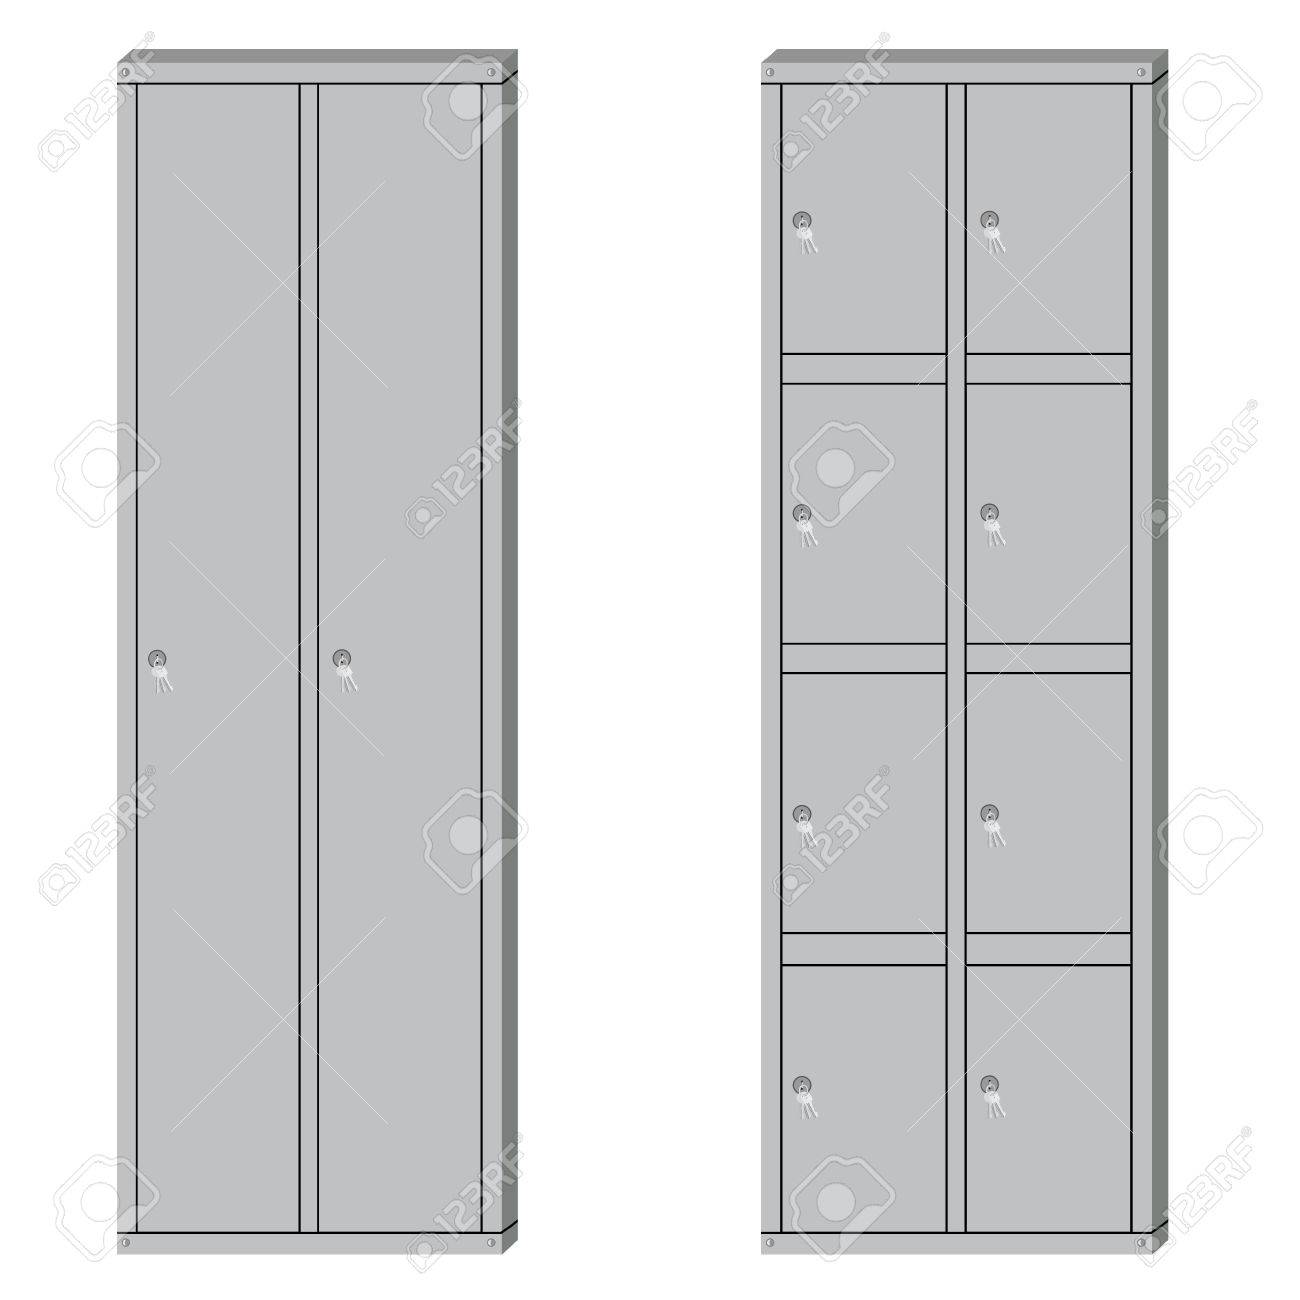 Vector   Vector Illustration Set Of Metal School Sport Lockers. Gym Locker. Locker  Door. Deposit Lockers